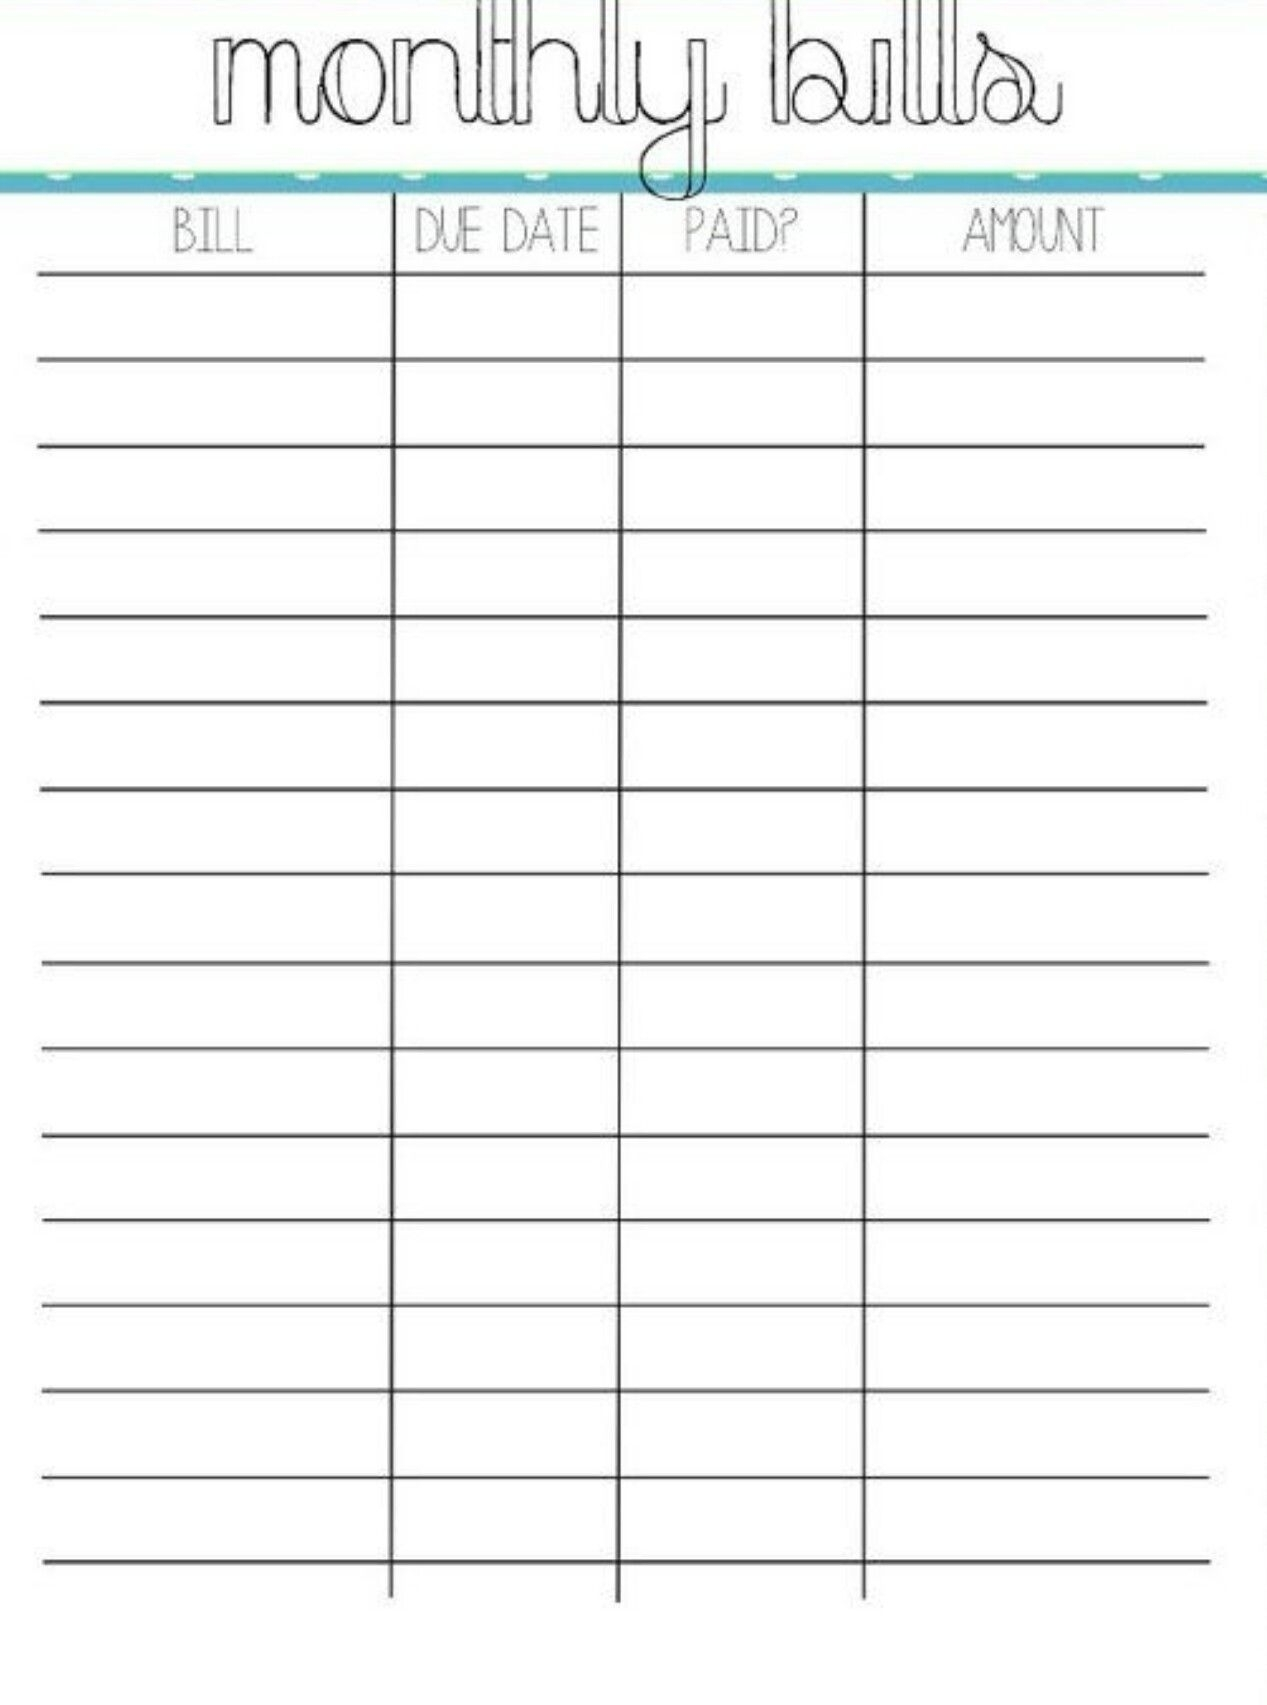 Take Monthly Bill Due Date Printable